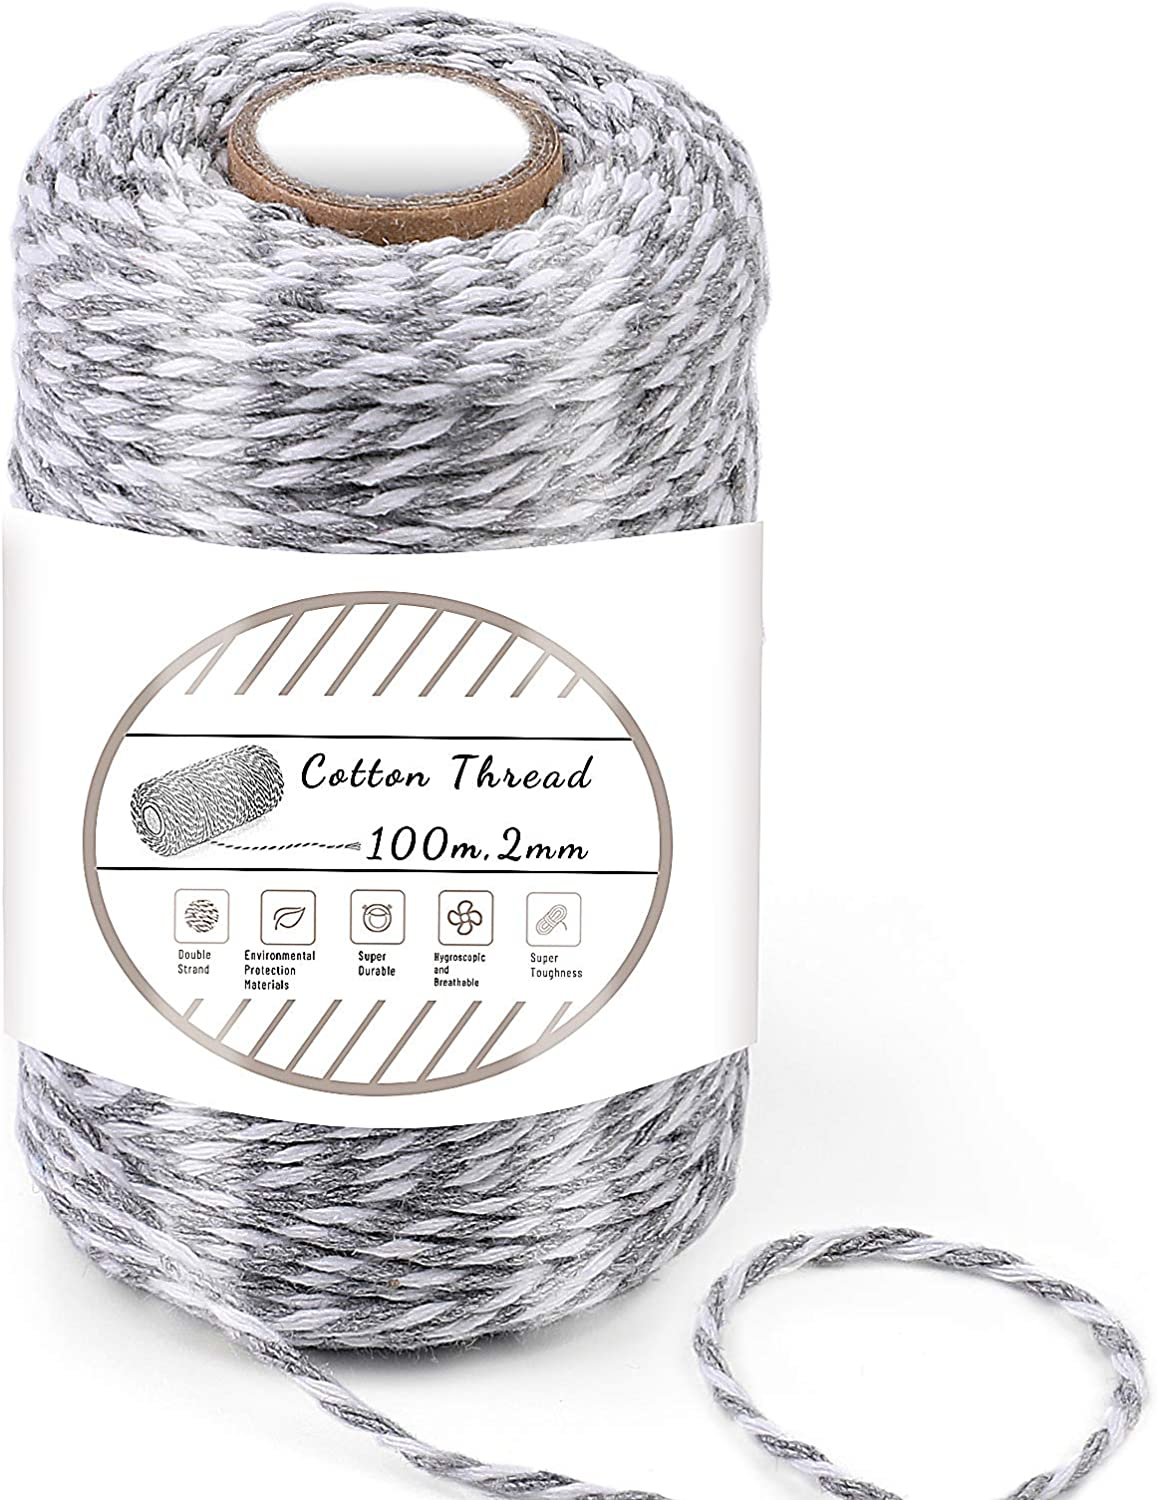 Gray and White Cotton String, 100M/328 Feet Cotton Bakers Twine String, Cotton Cord, Gift Wrapping Twine for Baking, DIY Crafts, Home Decoration (2MM)